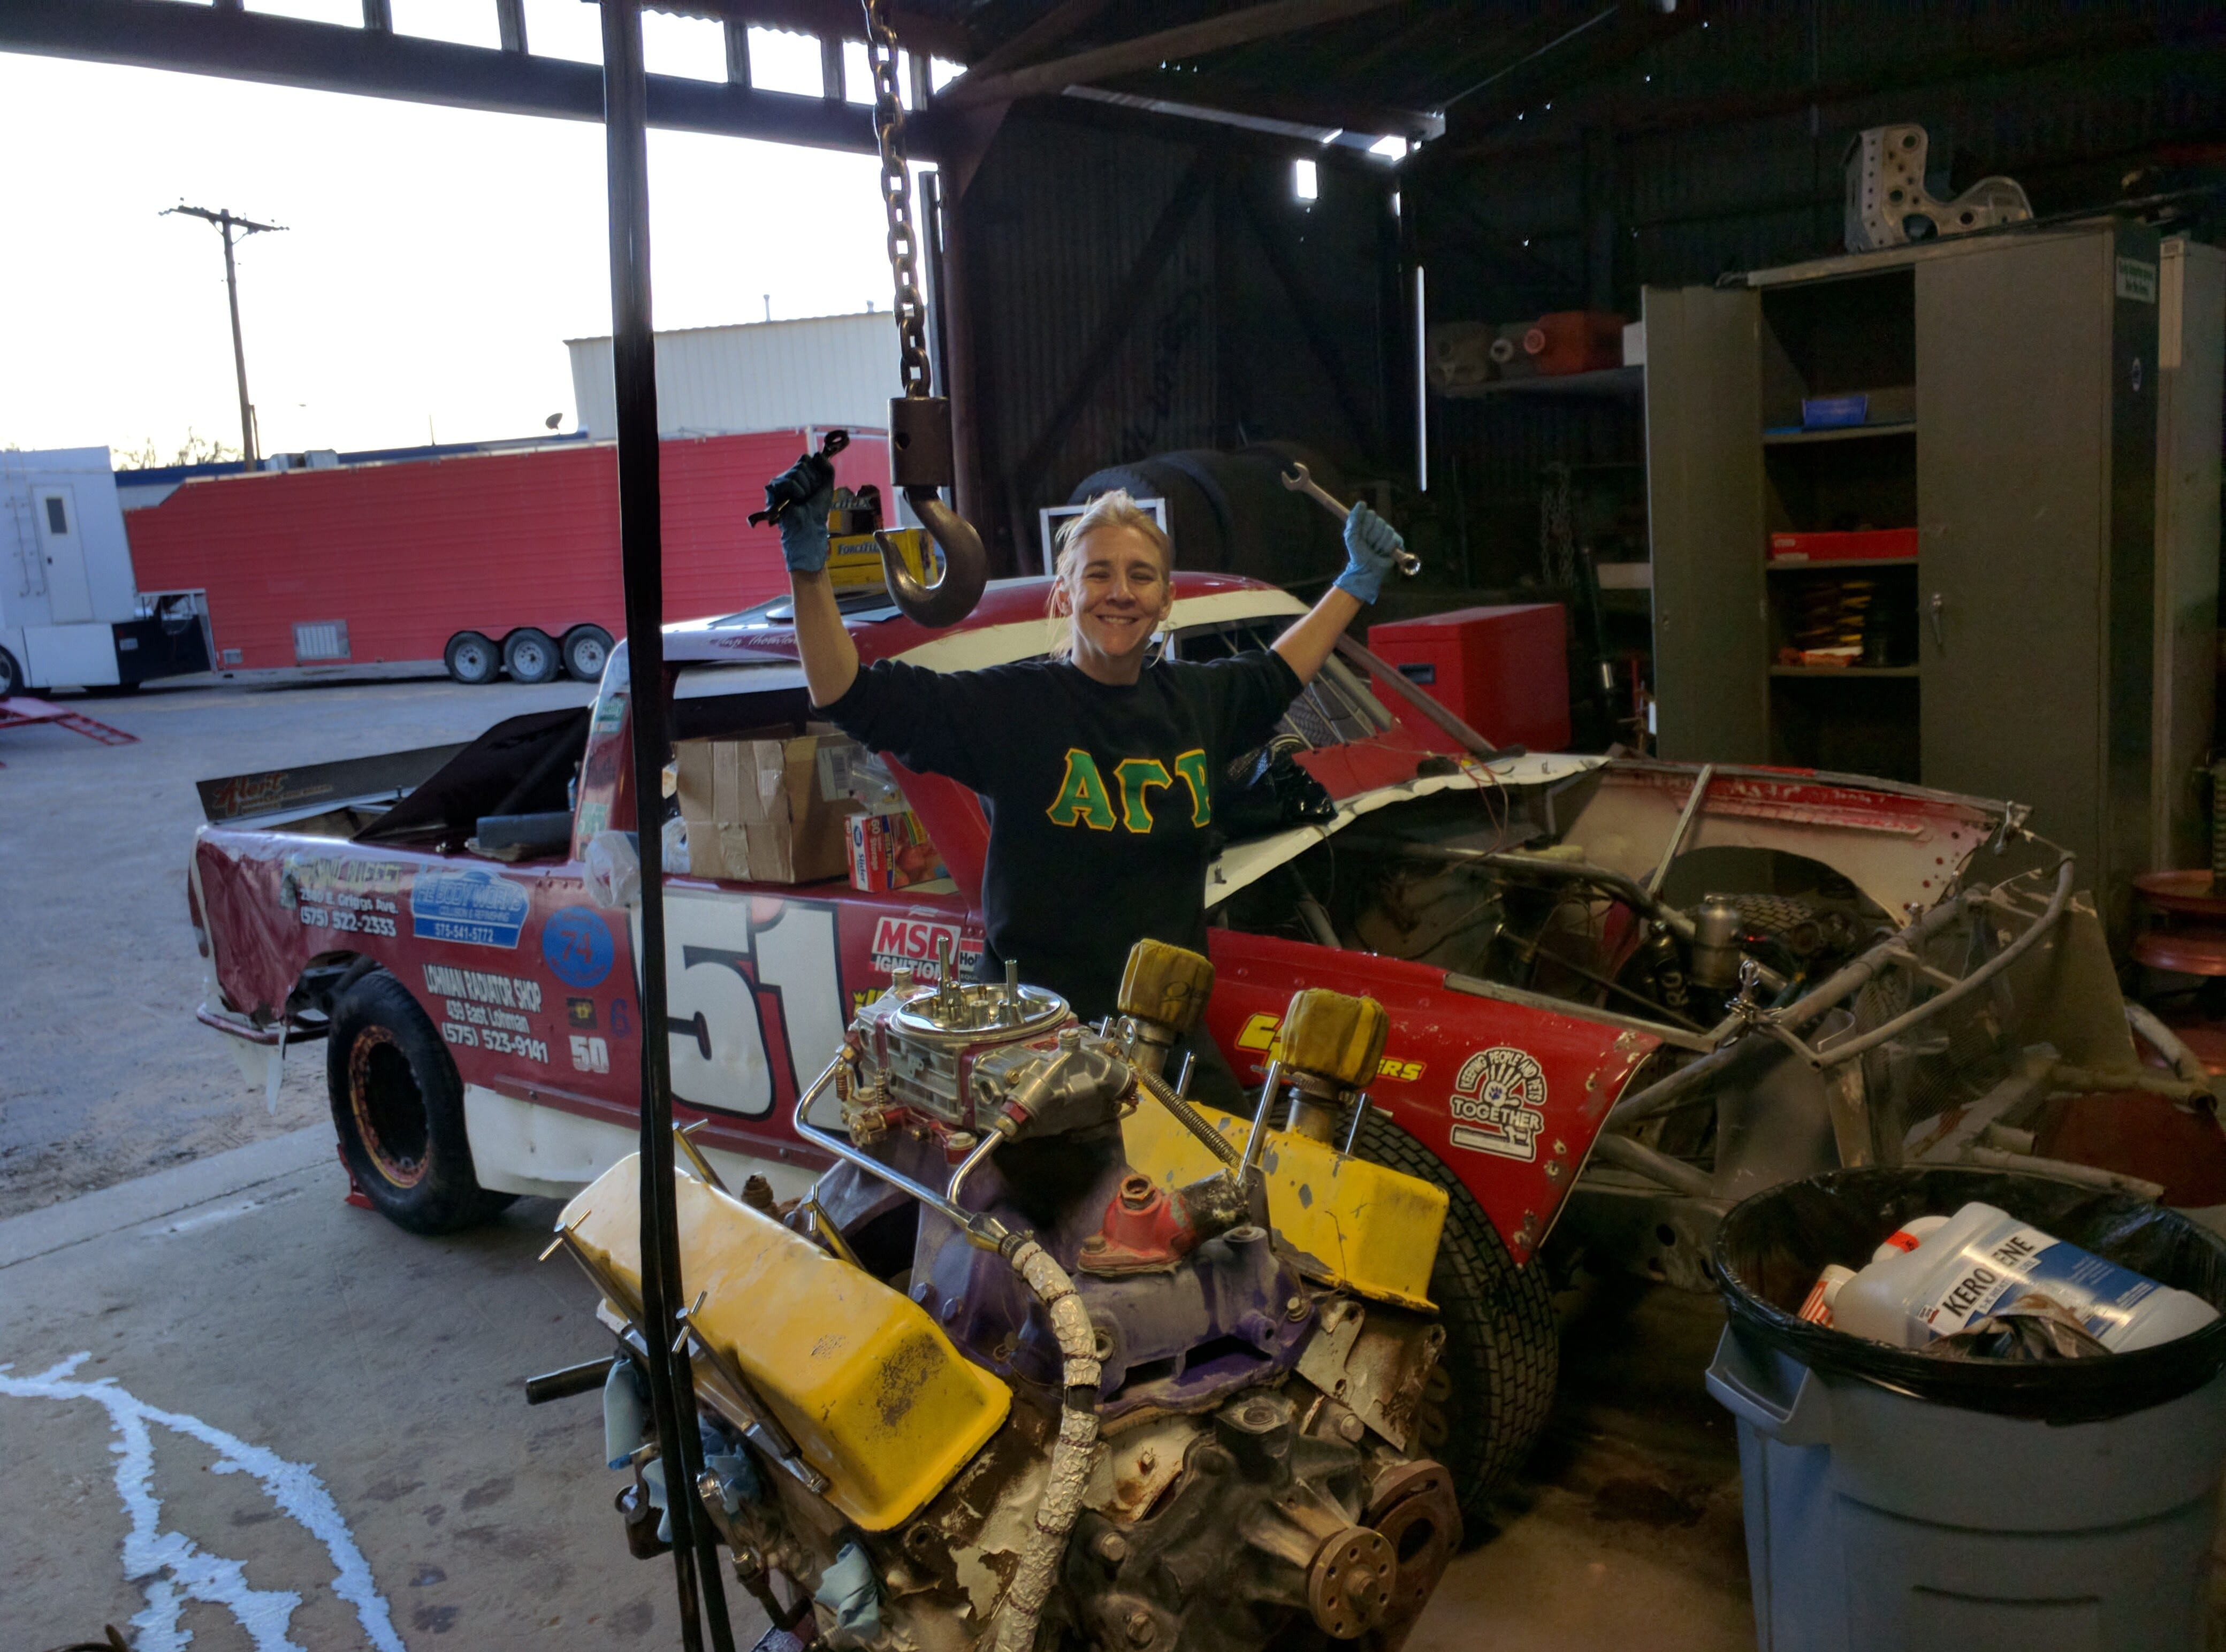 Safety Equipment, Anji Thornton, Super Truck Racing, Circle Track Racing, Garage, Truck, Engine